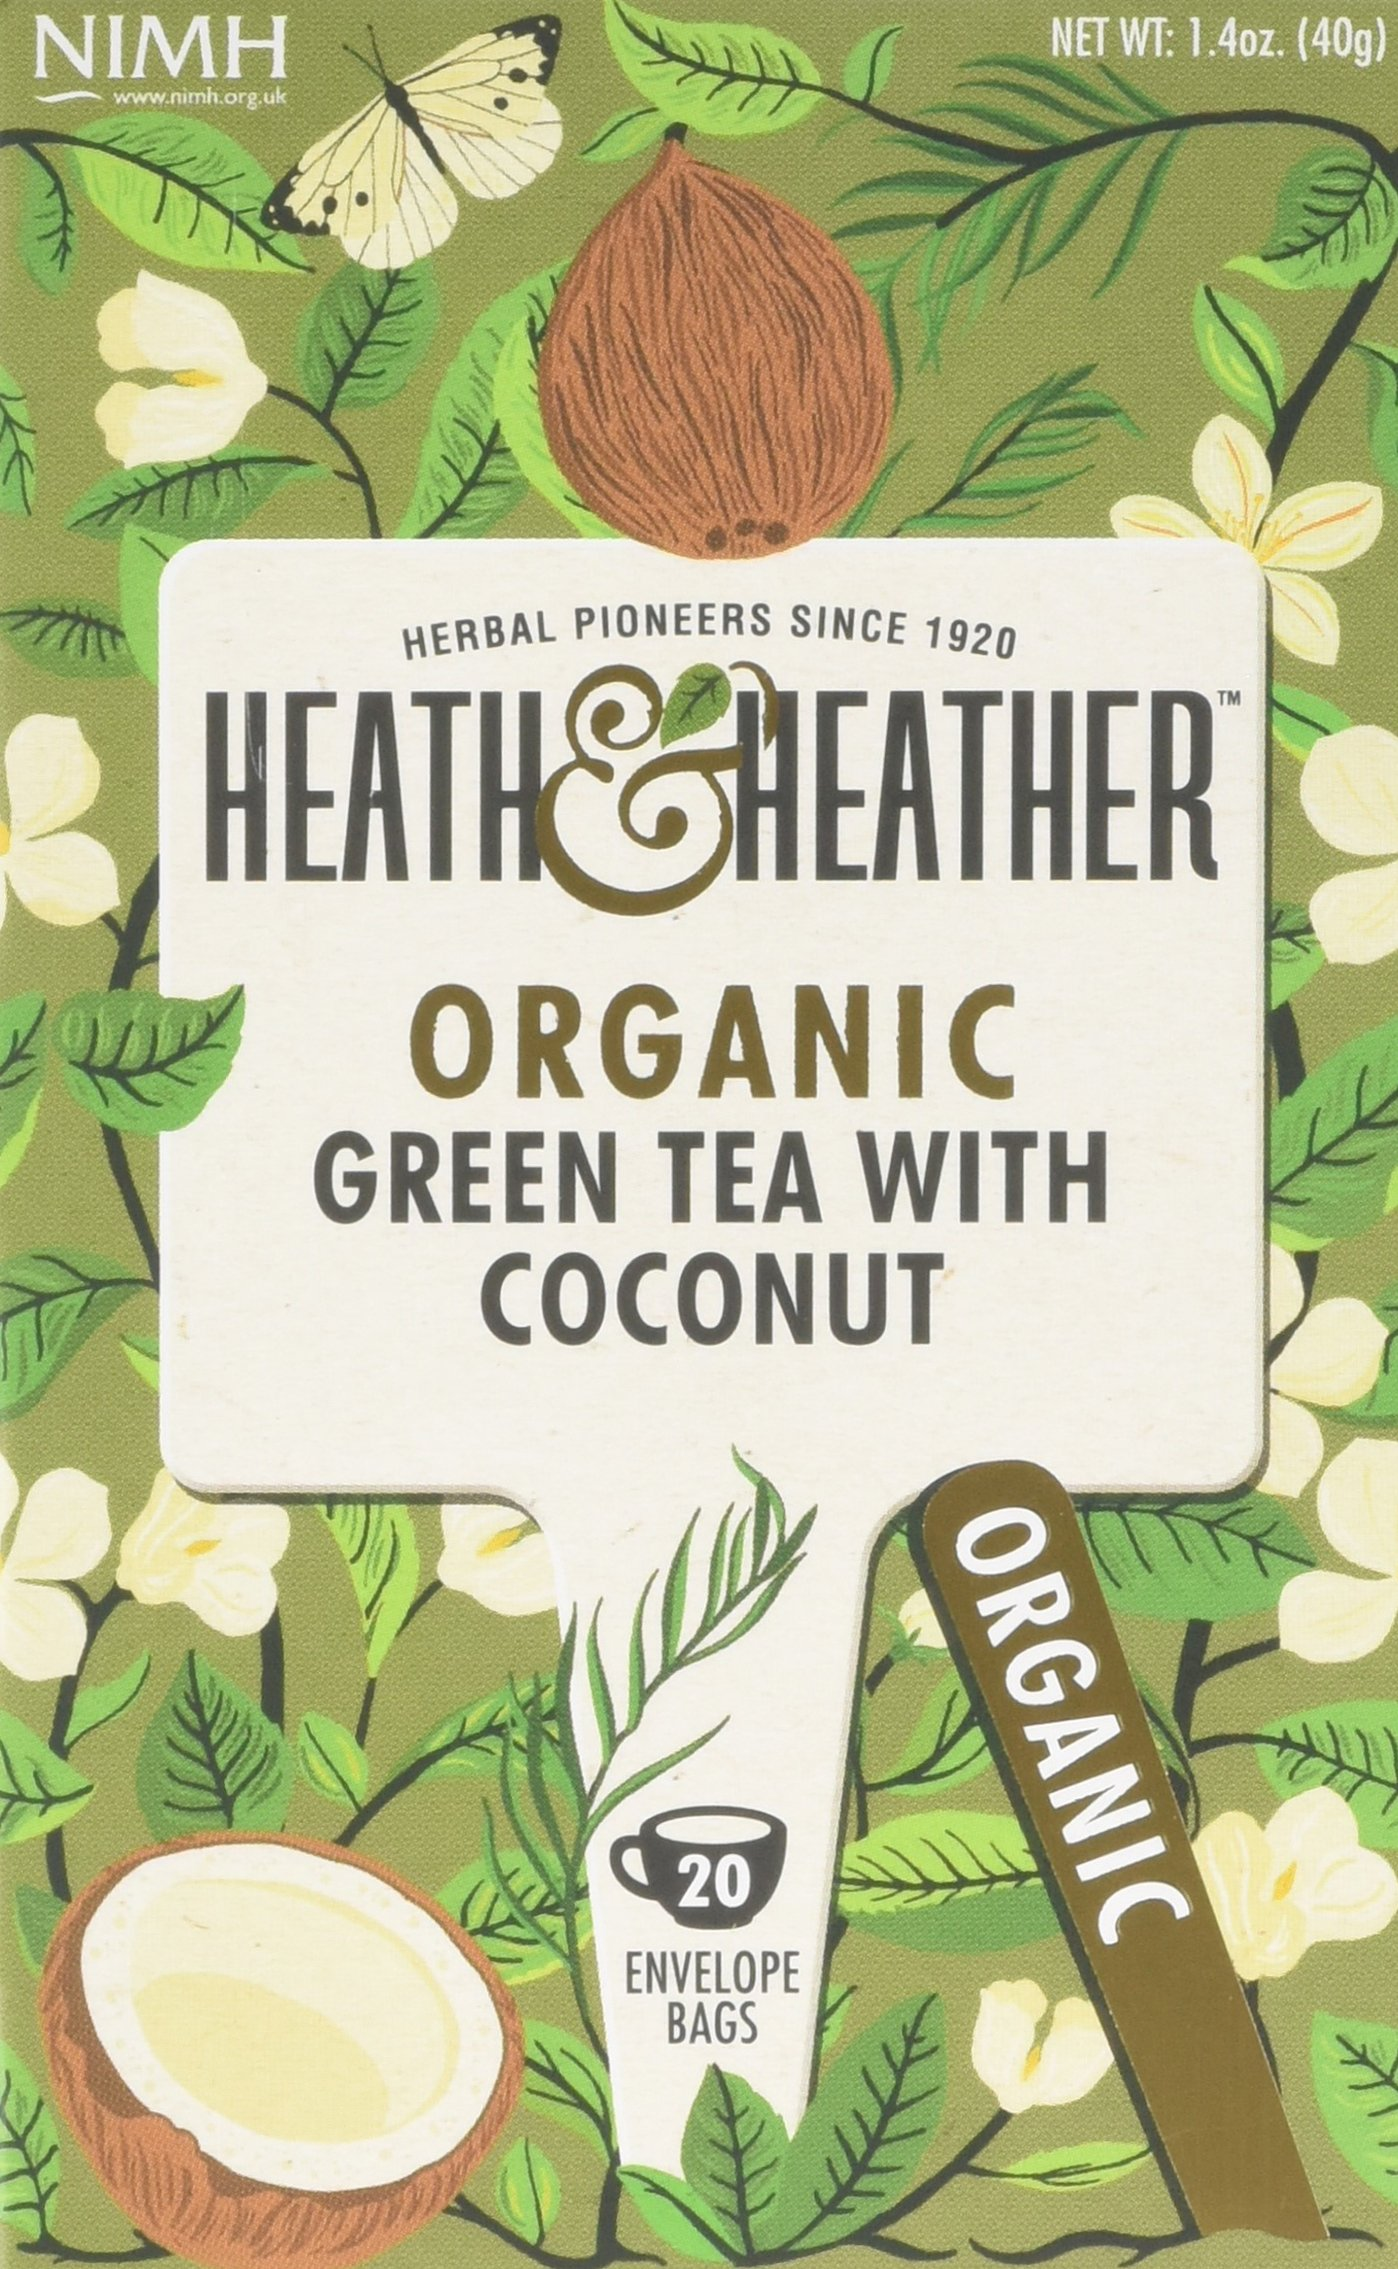 Heath & Heather organic green tea tea bundle (soil association) (green tea) (6 packs of 20 bags) (120 bags) (a fruity tea with aromas of coconut) (brews in 2-3 minutes)